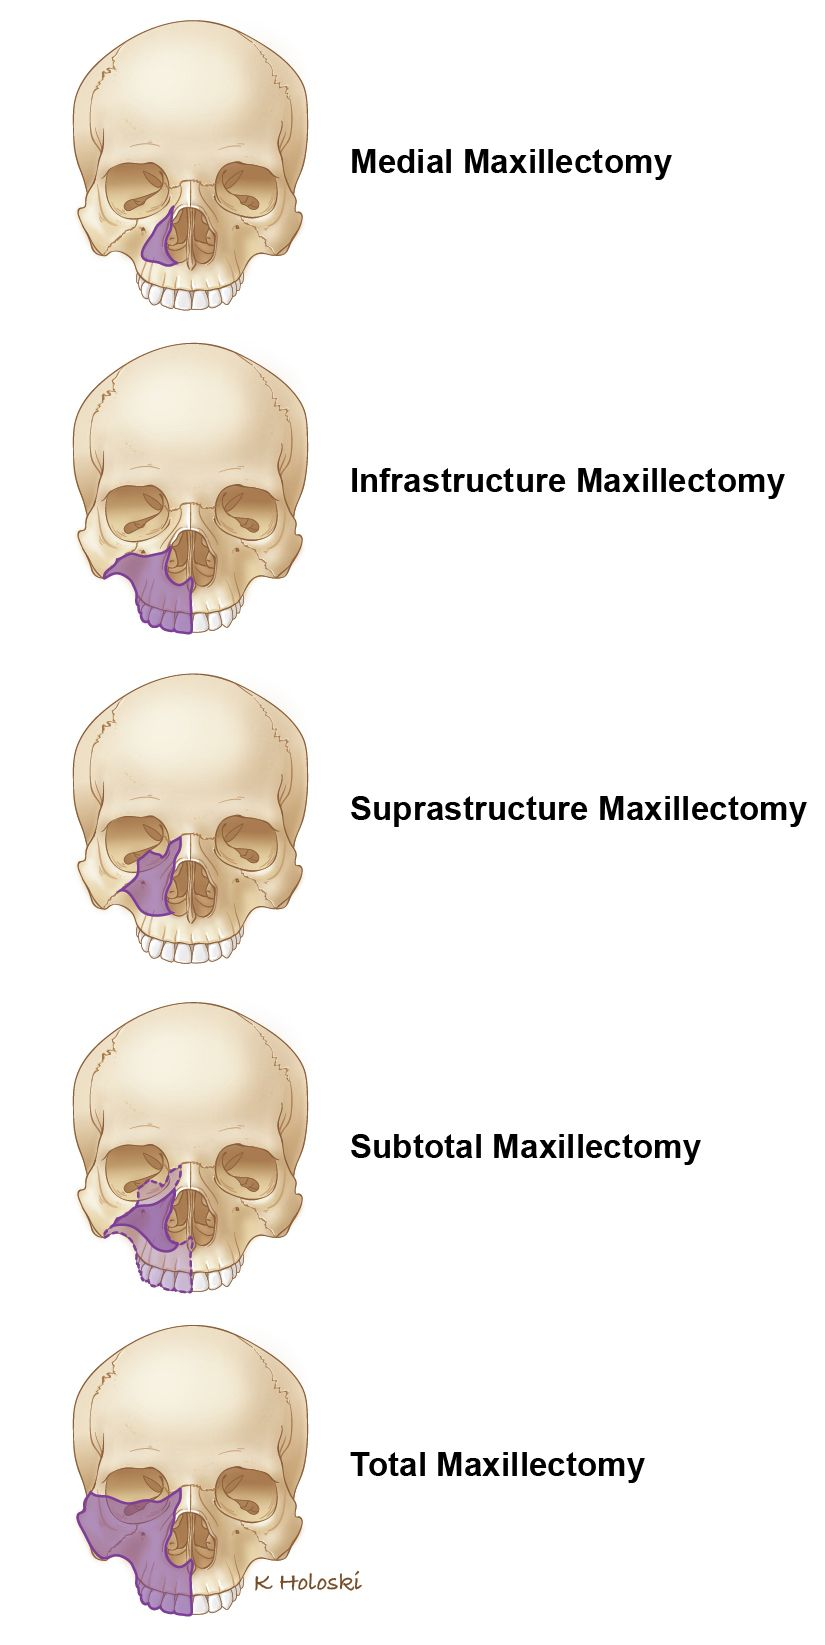 Maxillectomy is the removal of all or part of maxilla bone(s ...